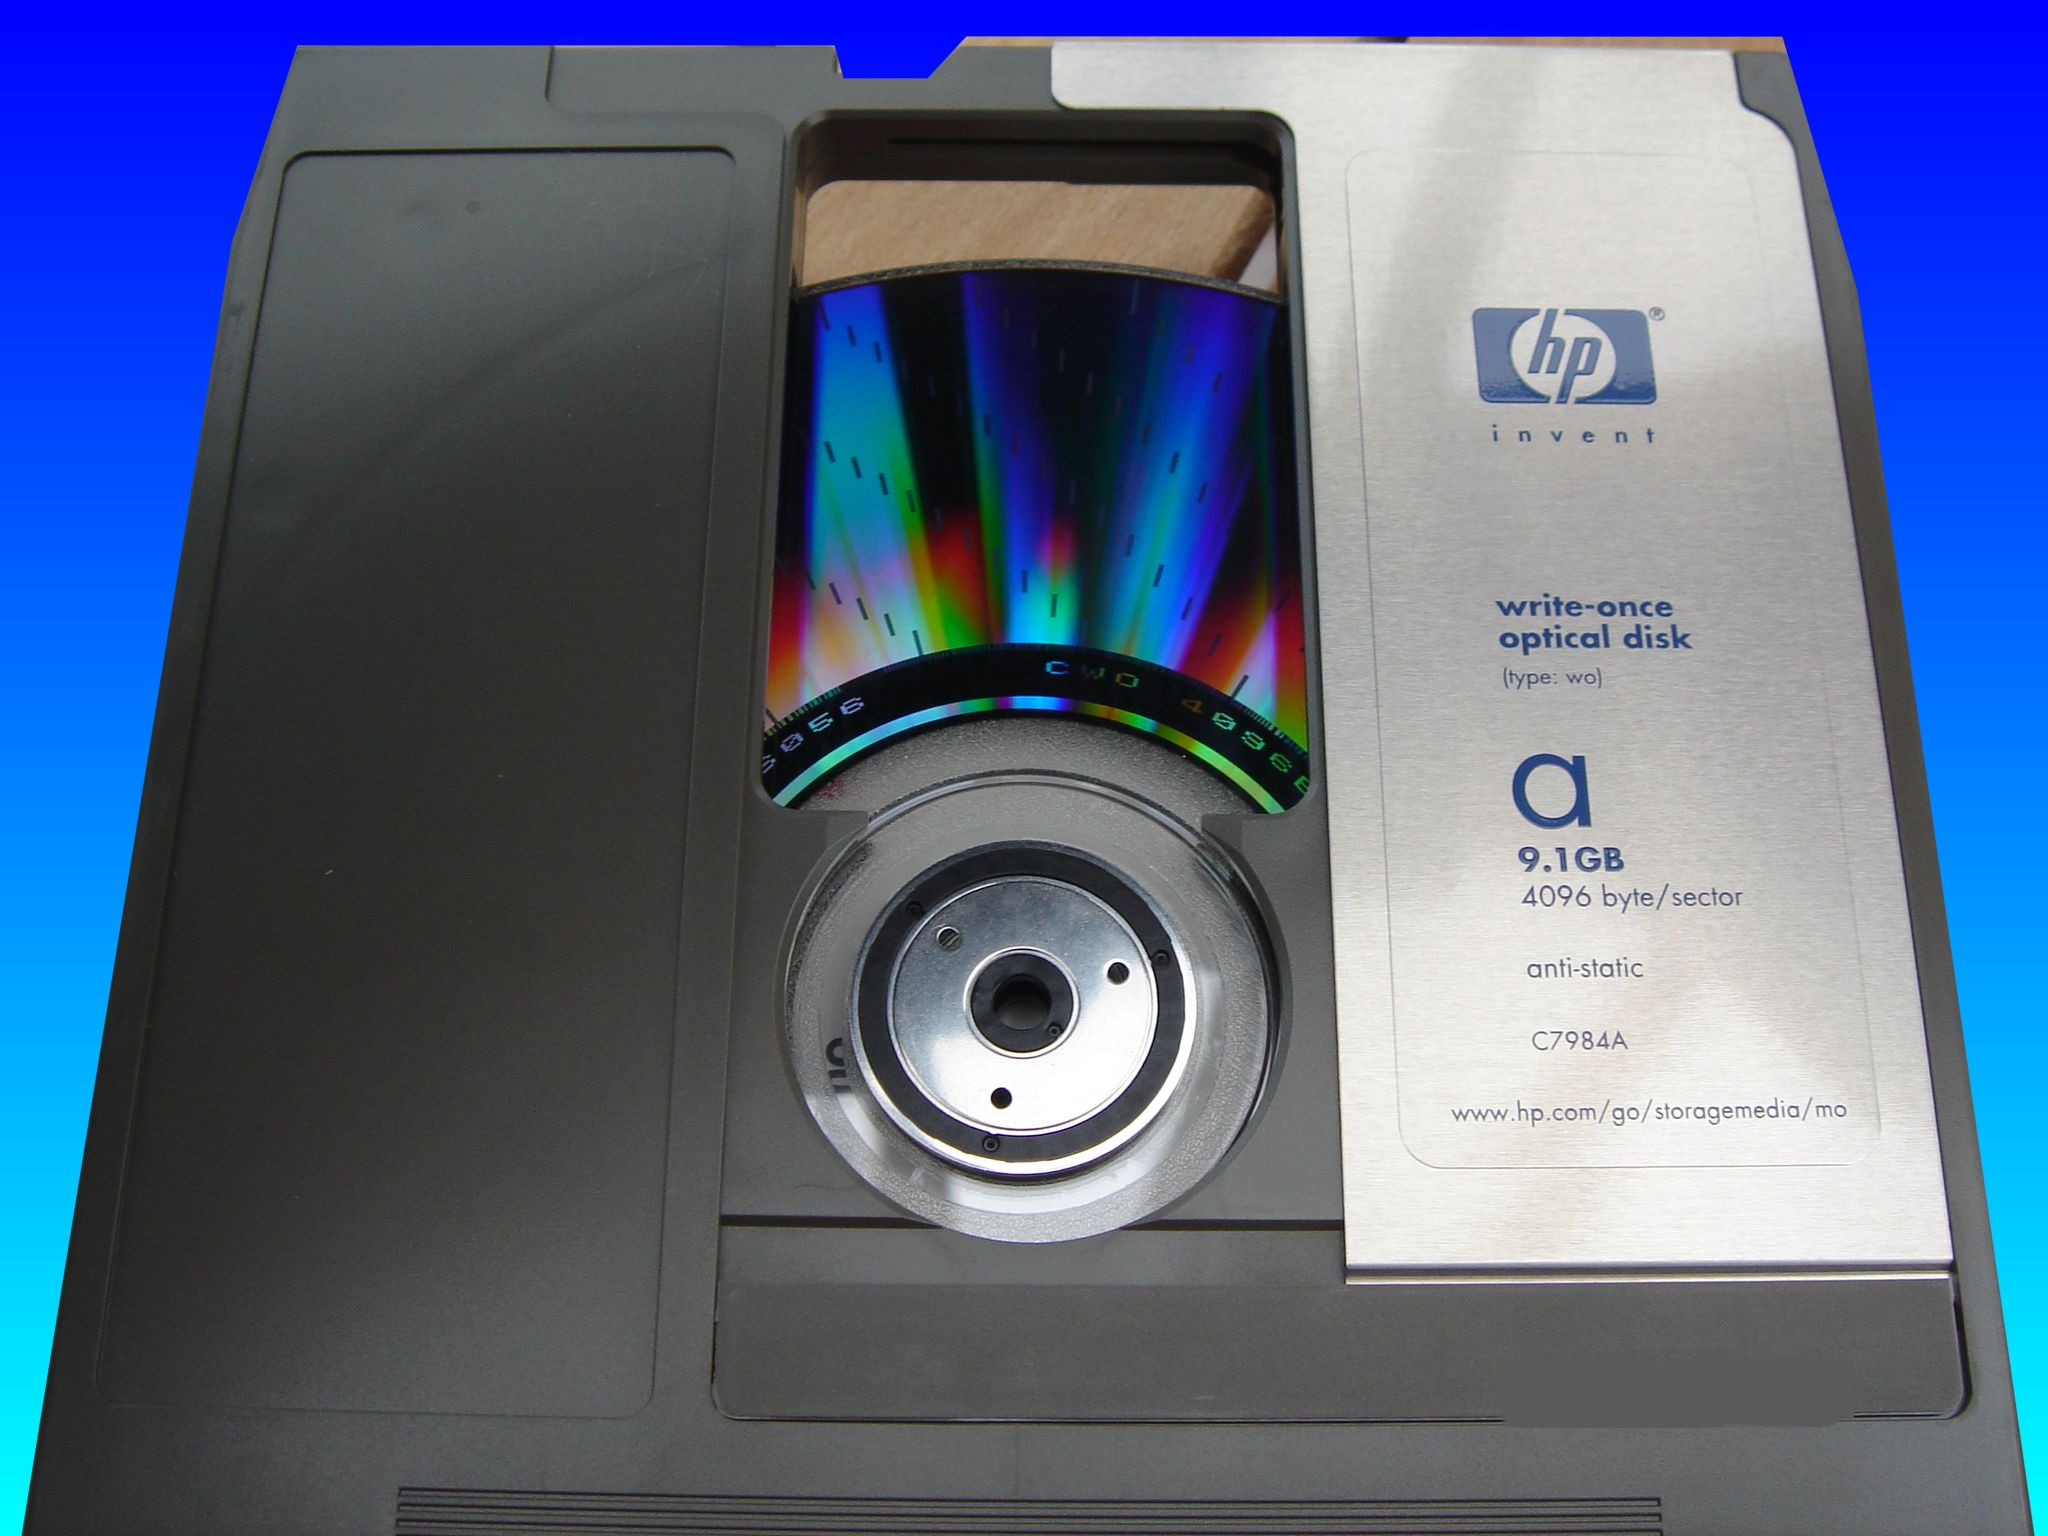 OpenText files stored on optical mo disk